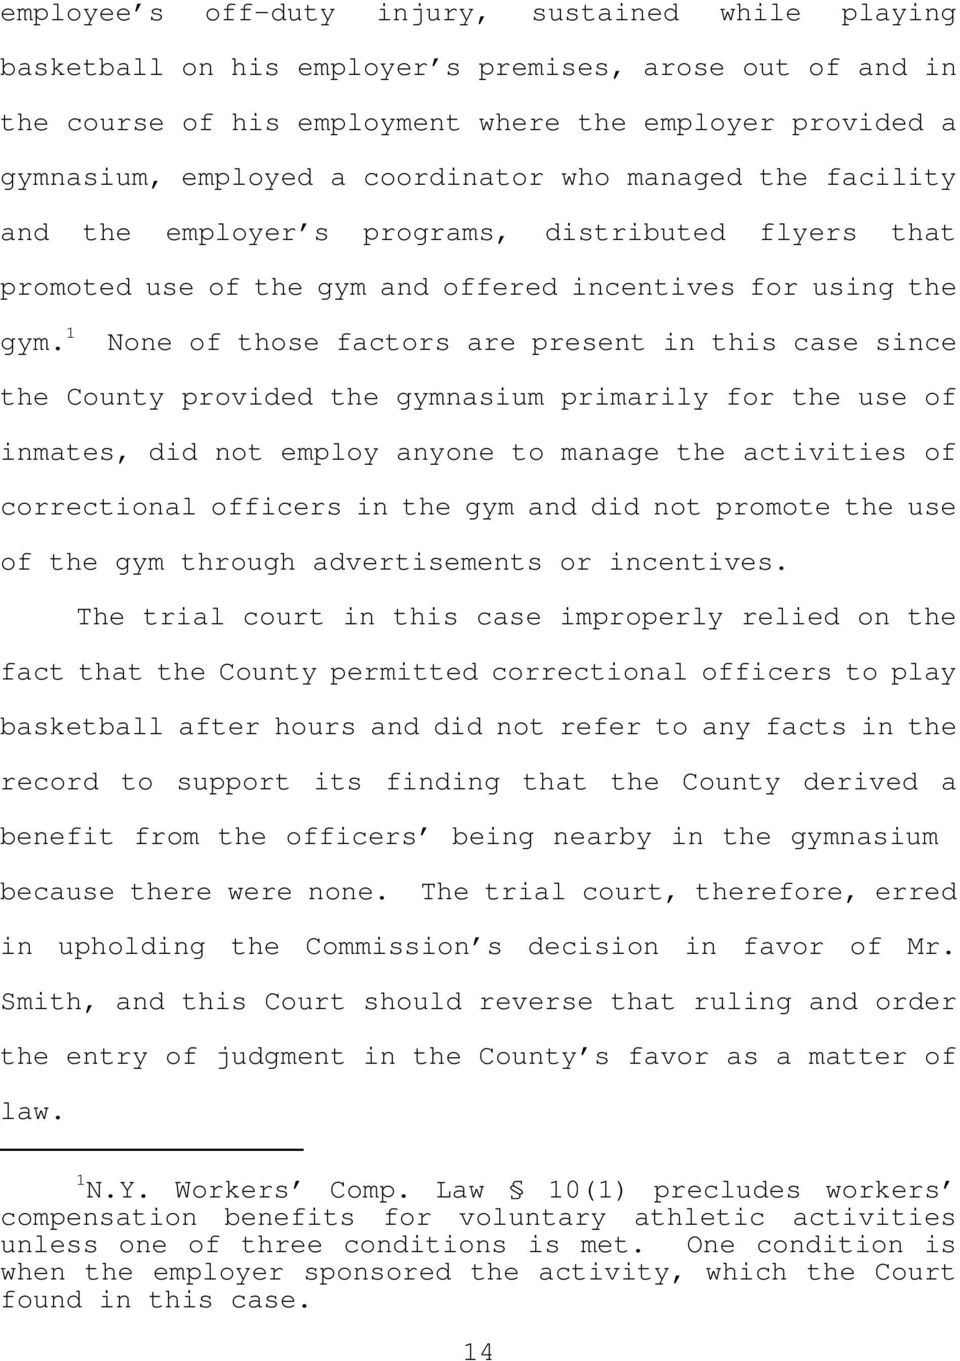 1 None of those factors are present in this case since the County provided the gymnasium primarily for the use of inmates, did not employ anyone to manage the activities of correctional officers in